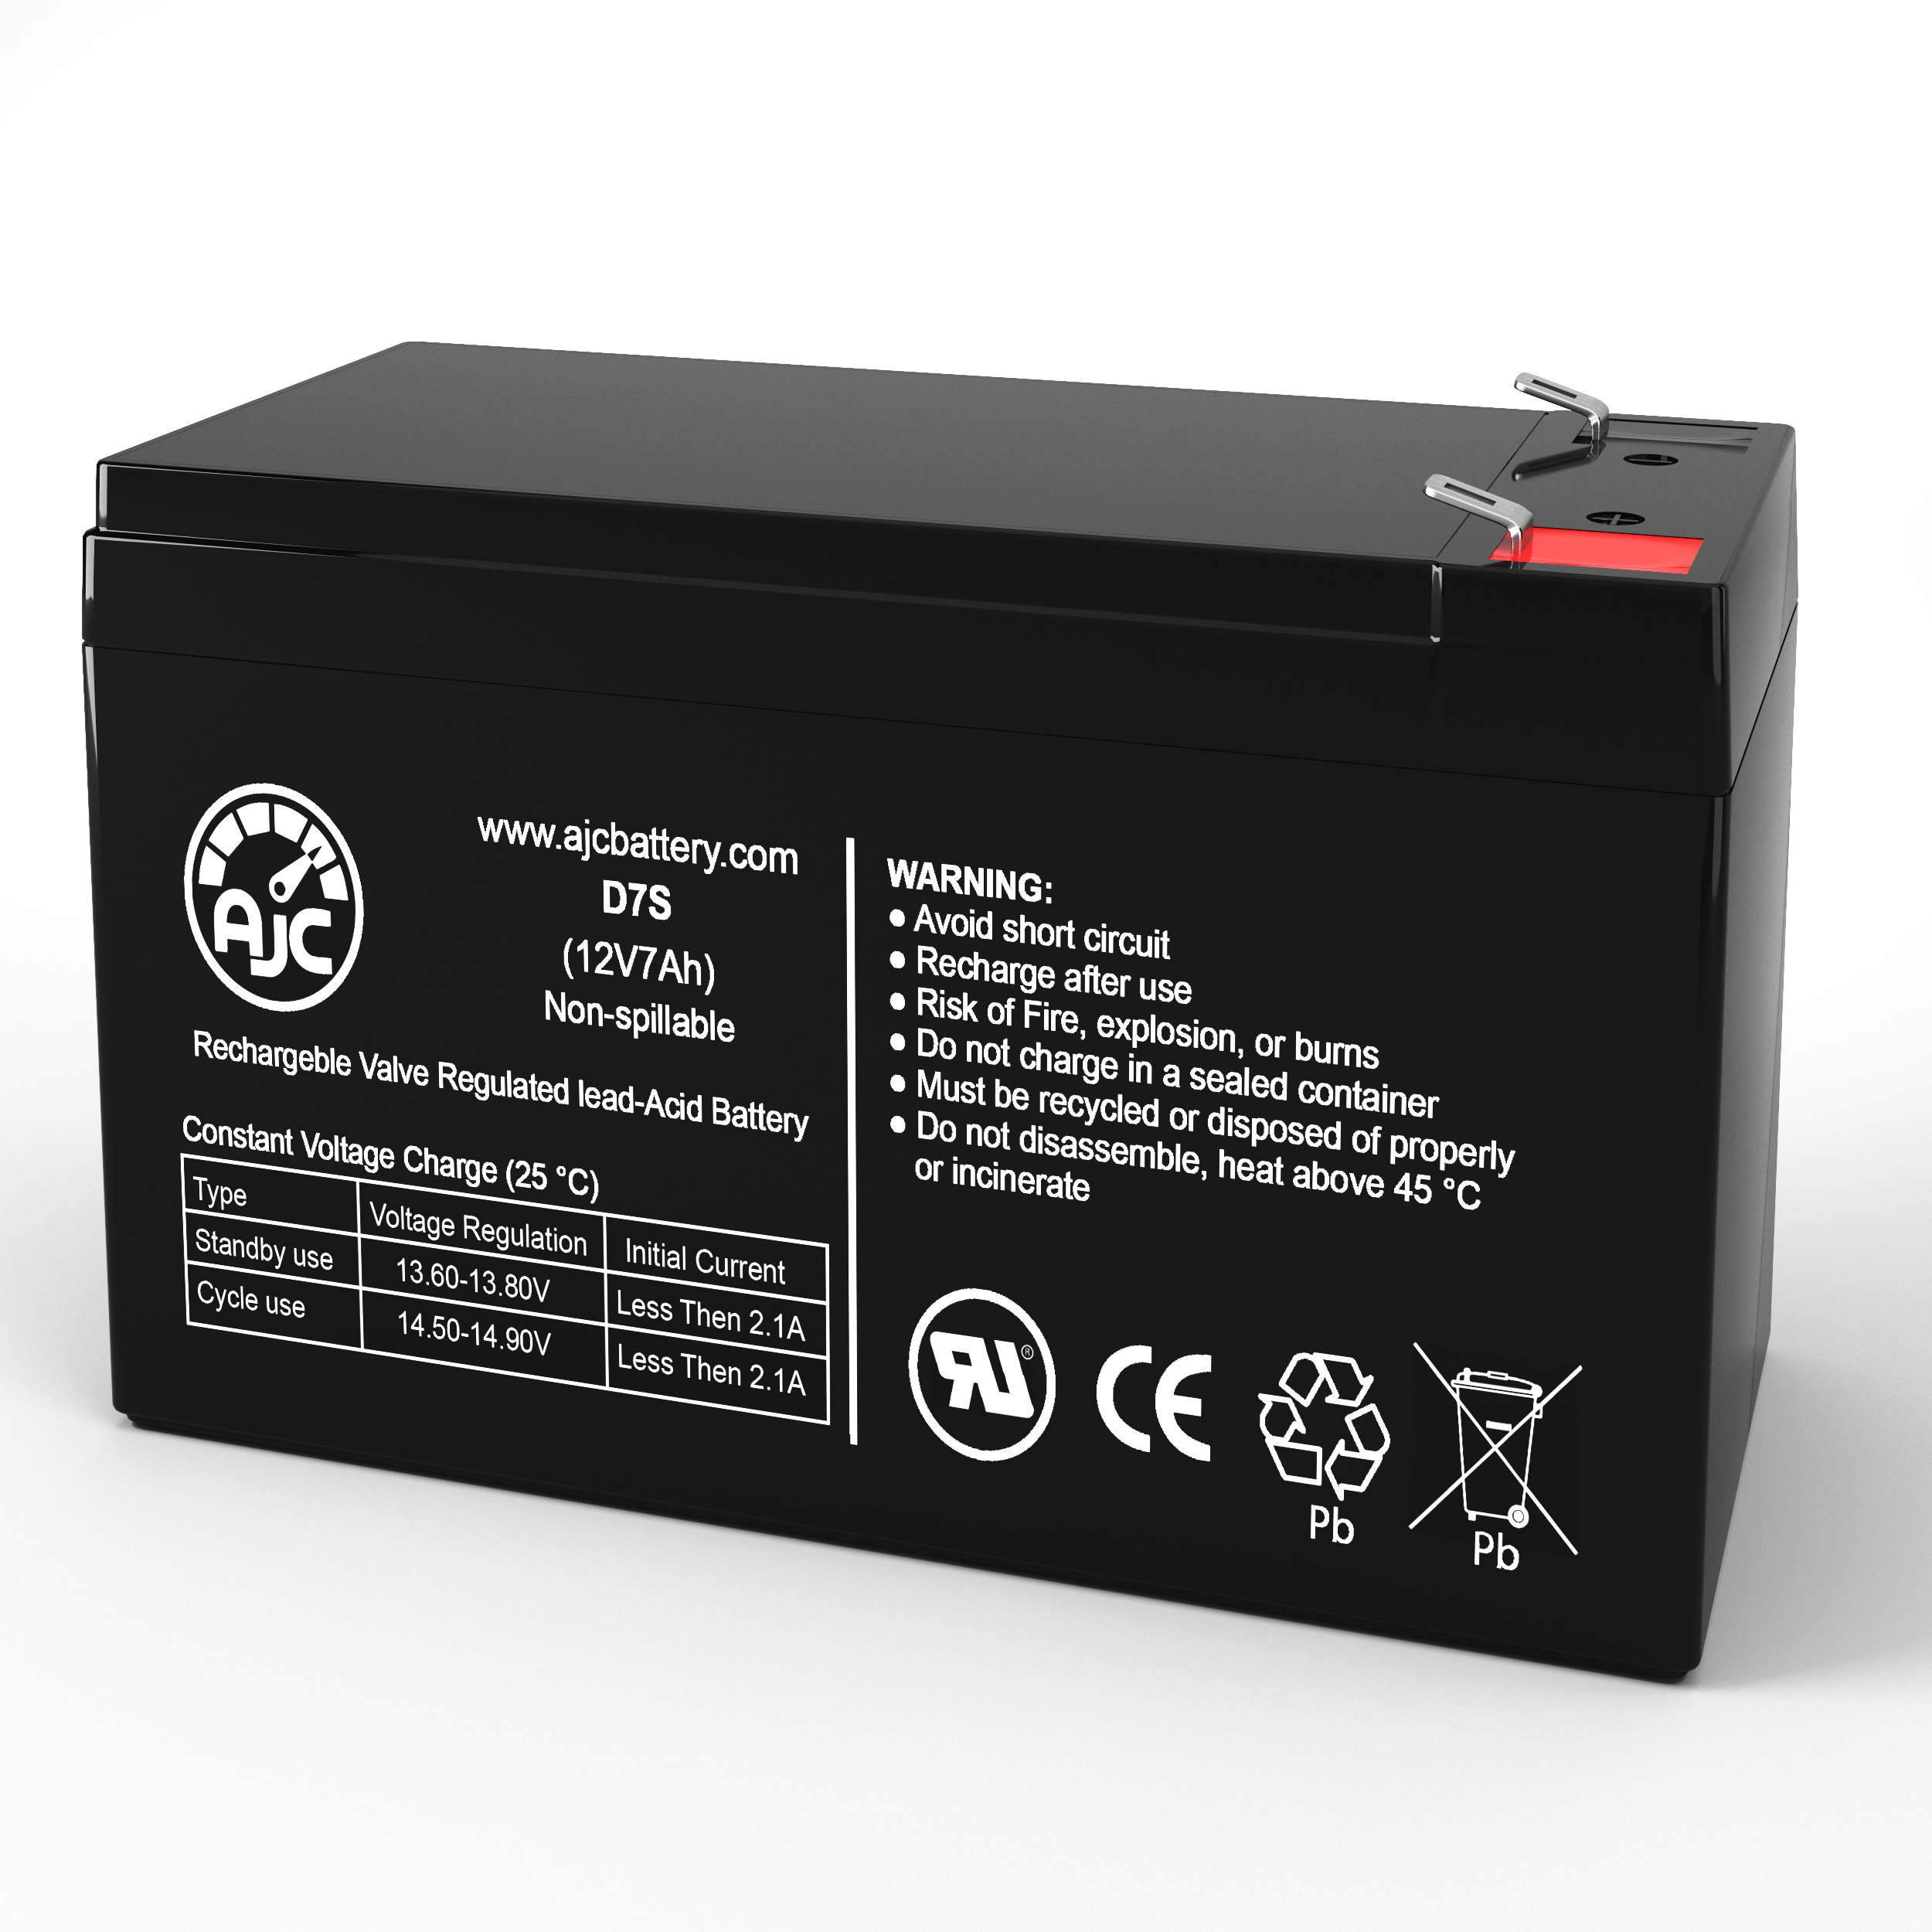 CyberPower UP825 12V 7Ah UPS Battery This is an AJC Brand Replacement